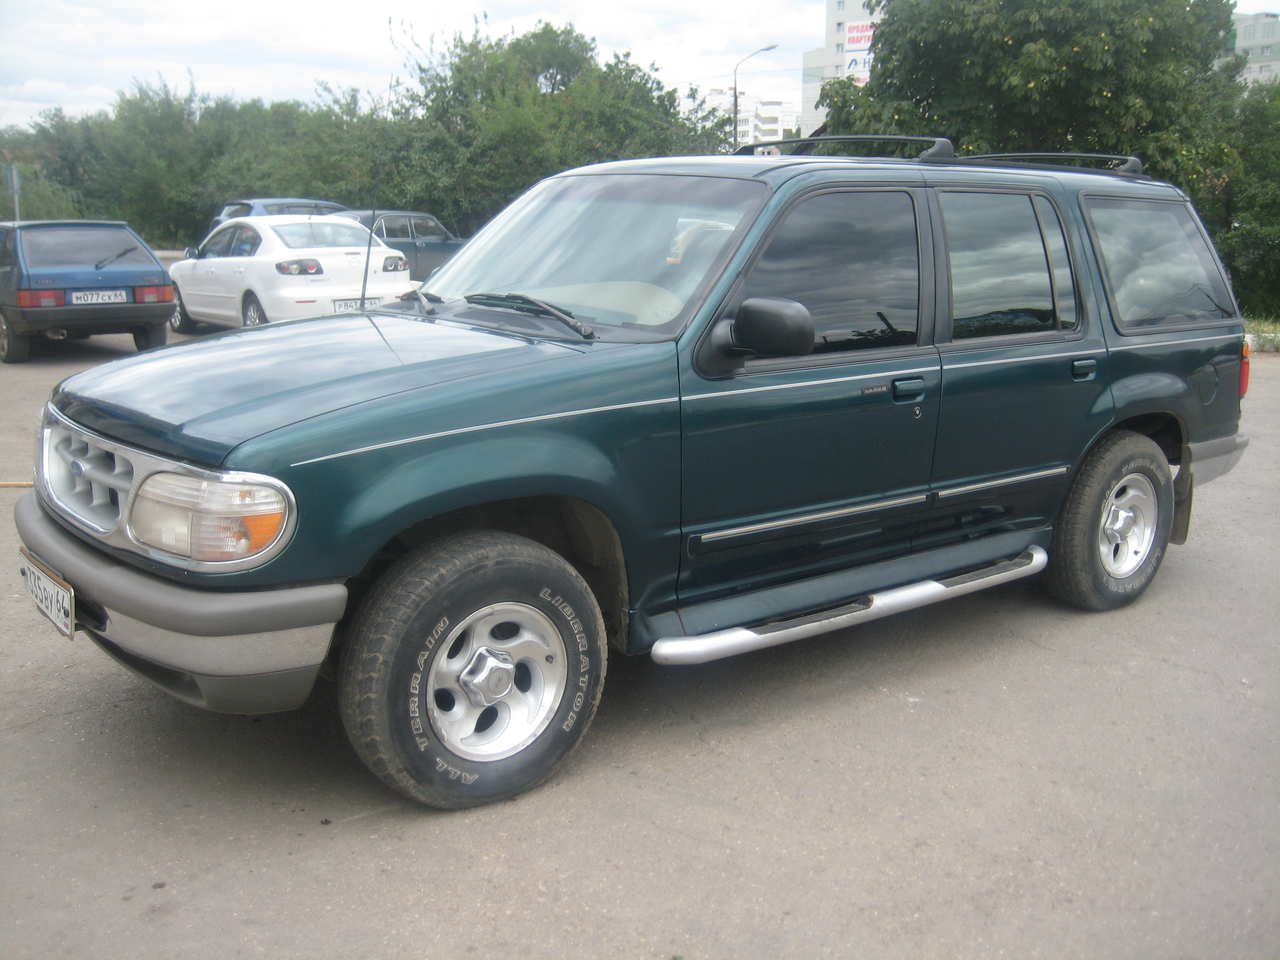 Ford explorer 1995 photo - 1